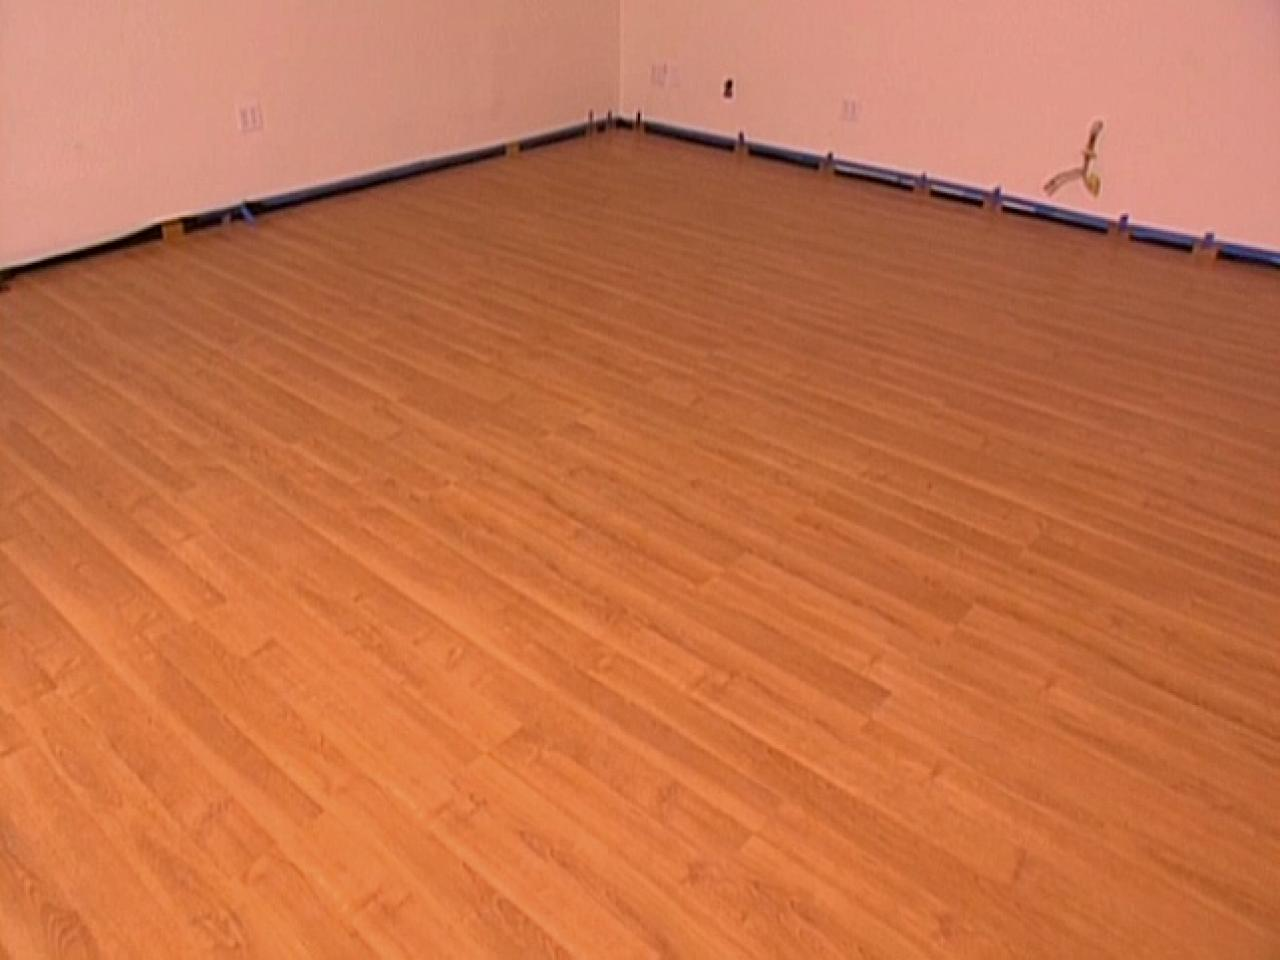 How To Install Snap Together Laminate Flooring